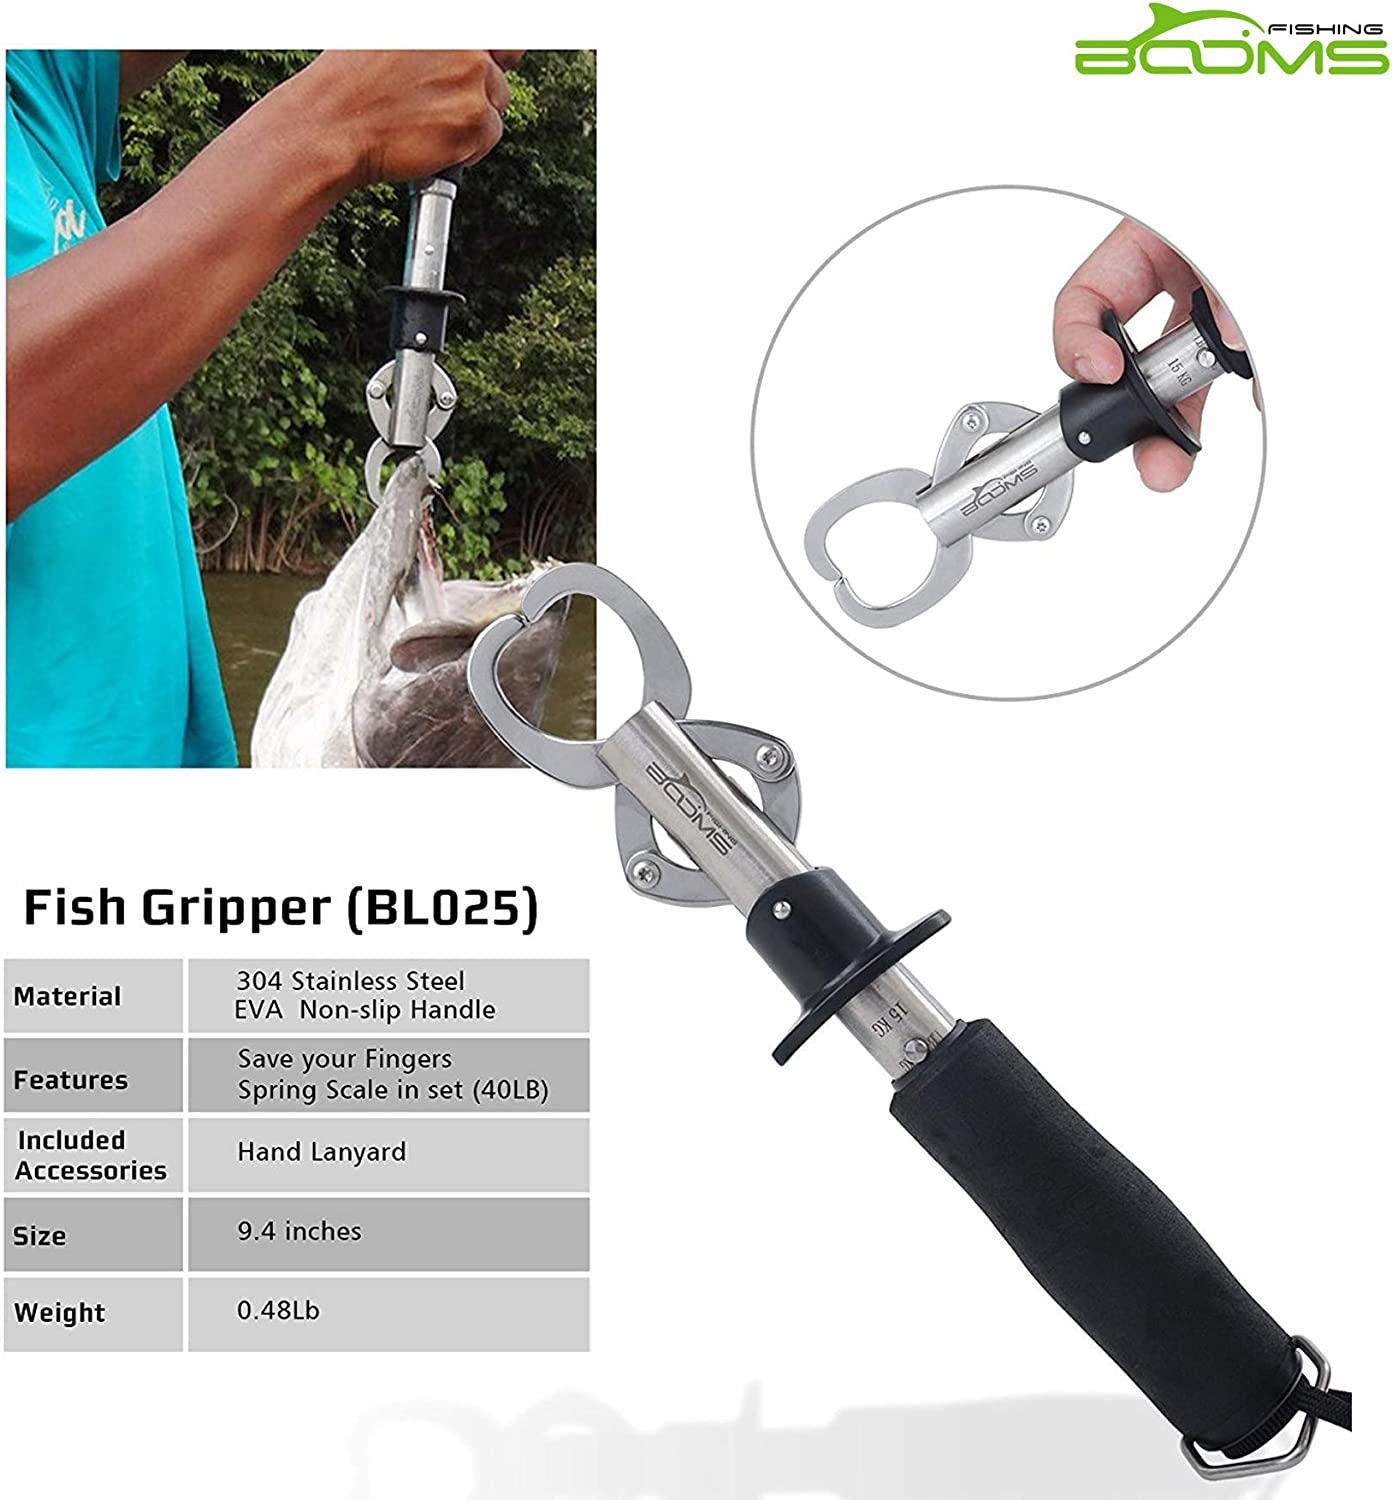 Booms Fishing G1 Sea Fishing Lip Gripper Grip Tools and Hold Fish with Tight Grip Built-in Scale and Tape 3